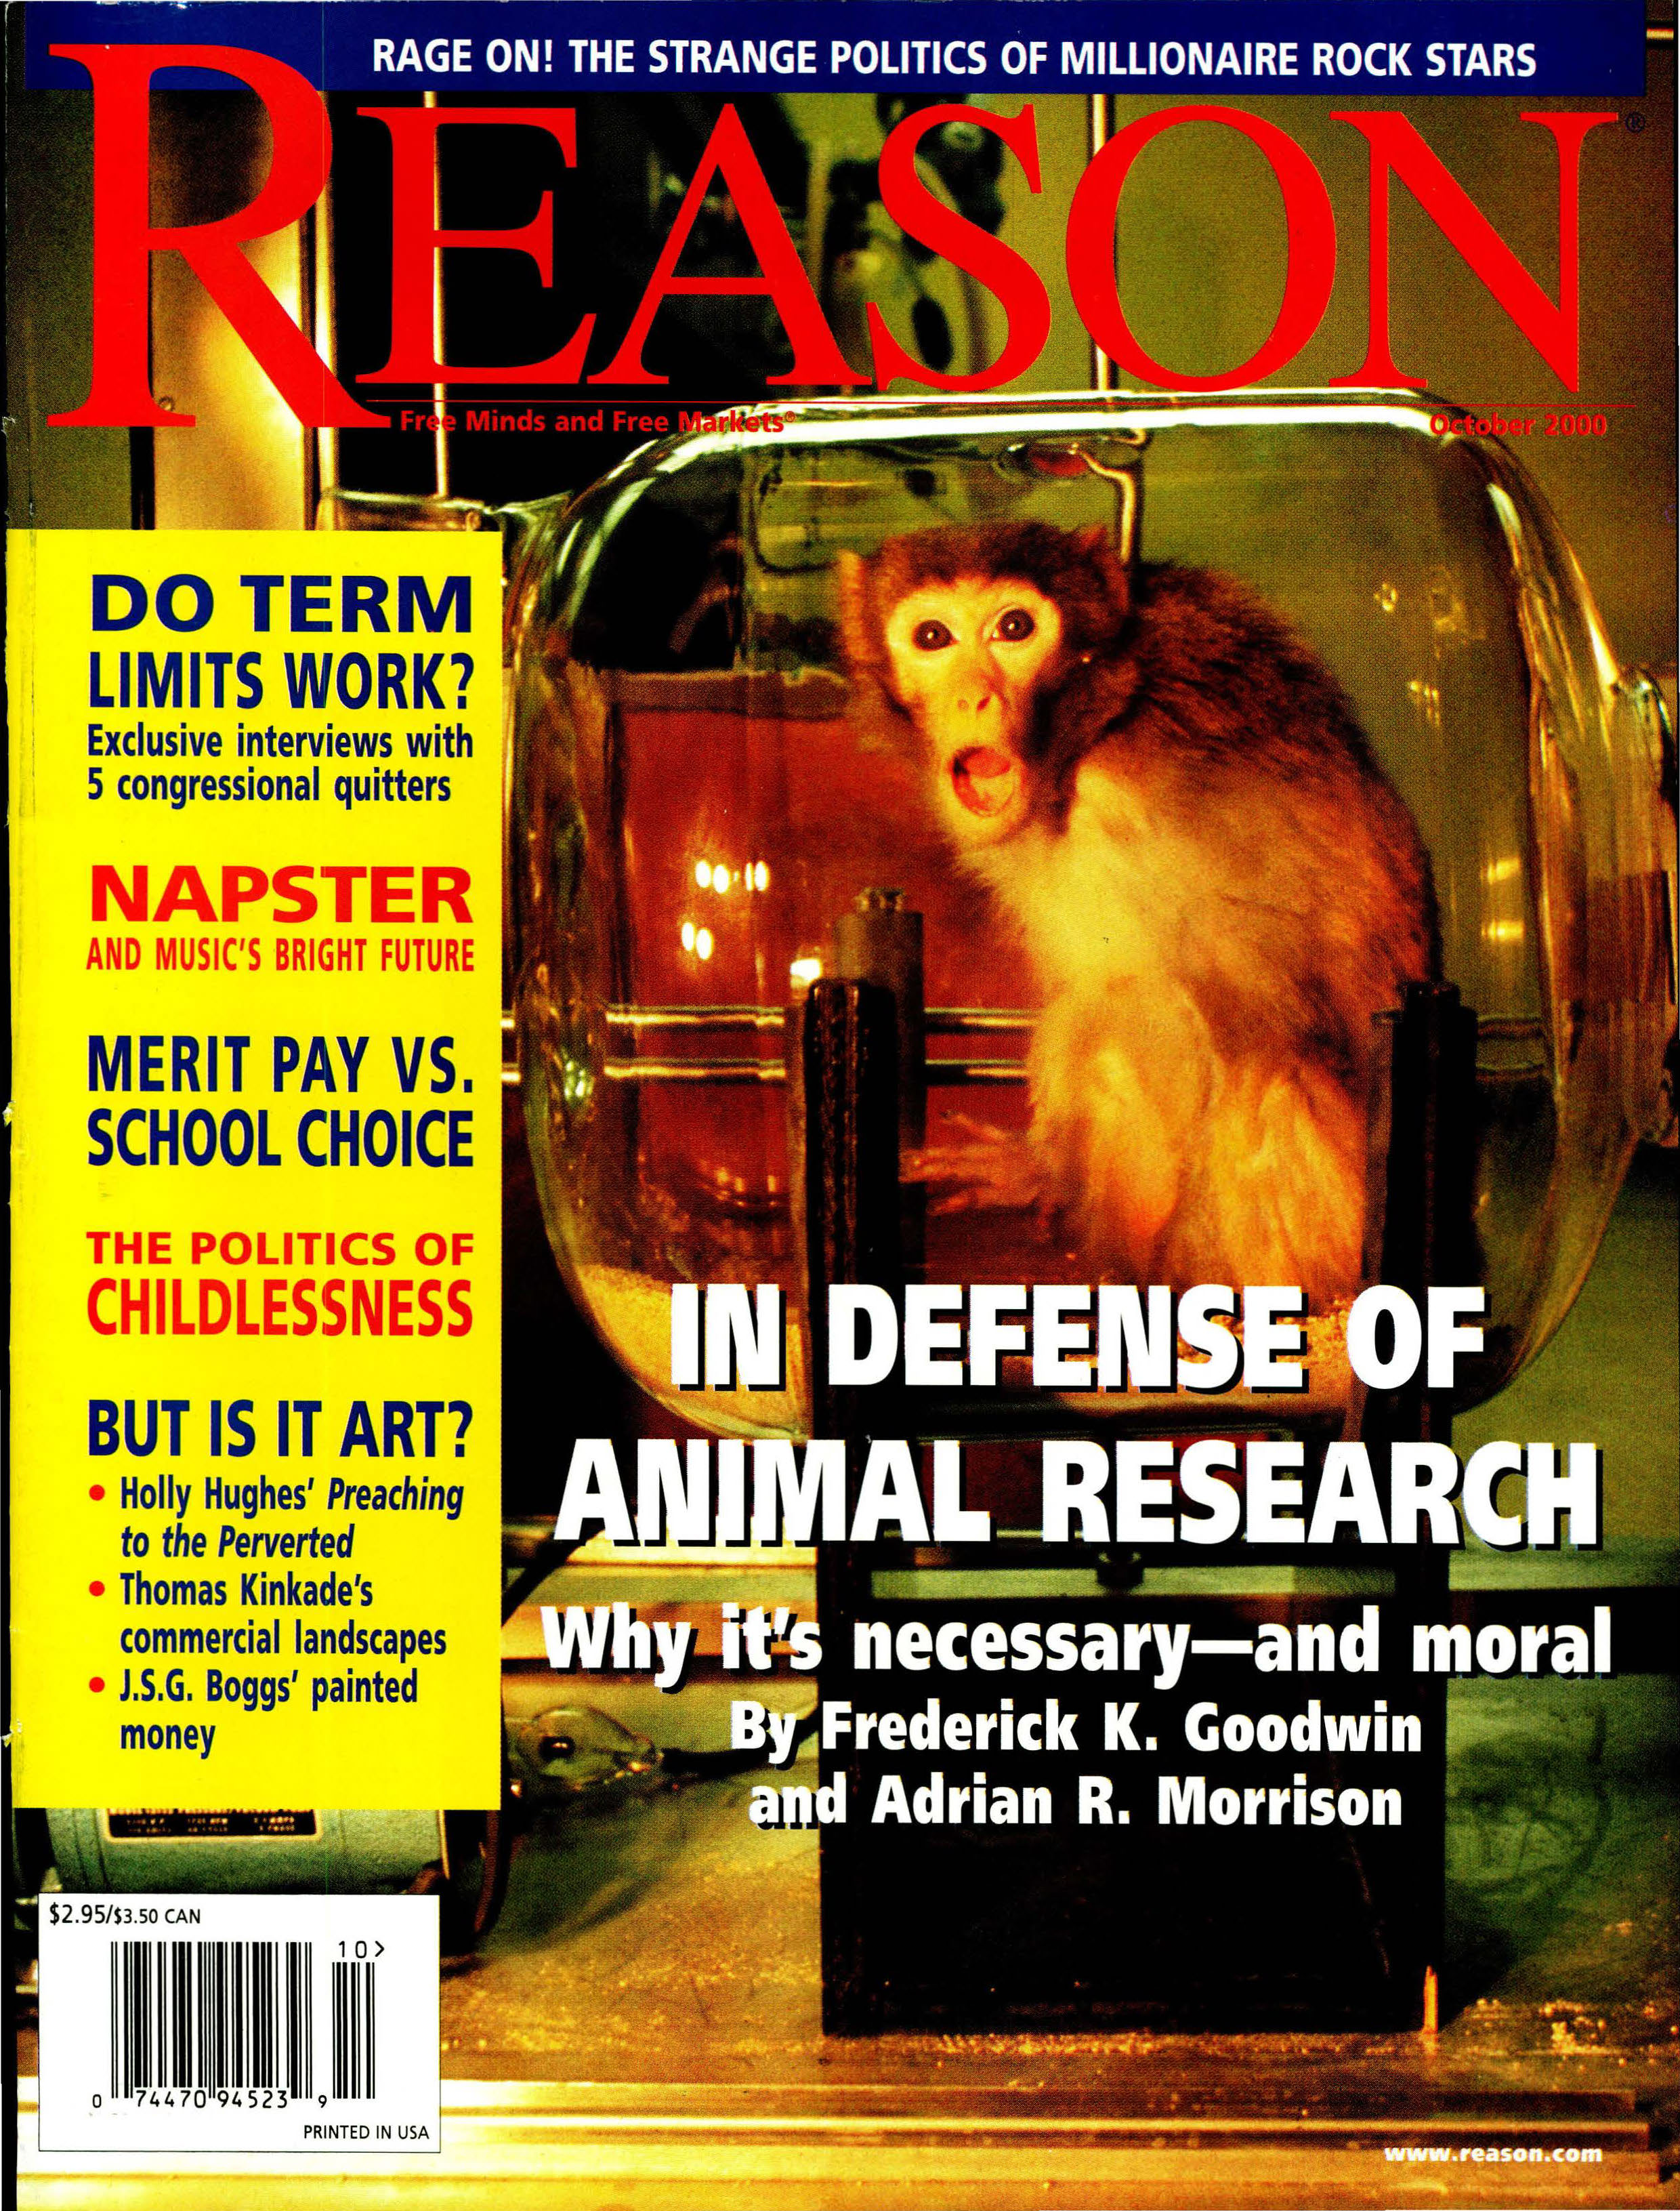 Reason Magazine, October 2000 cover image